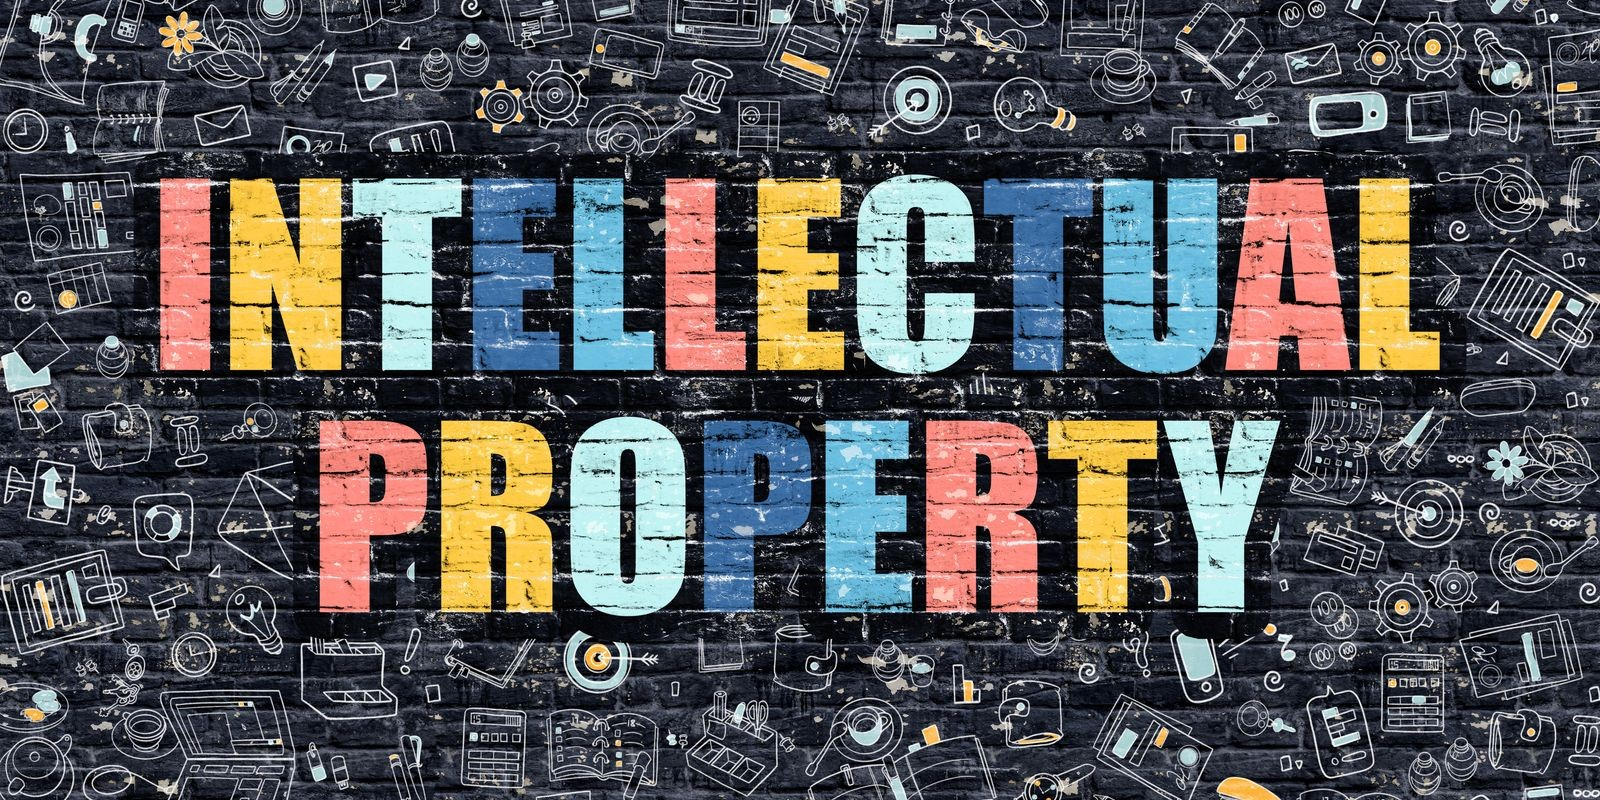 Register copyrights, trademarks, and patents